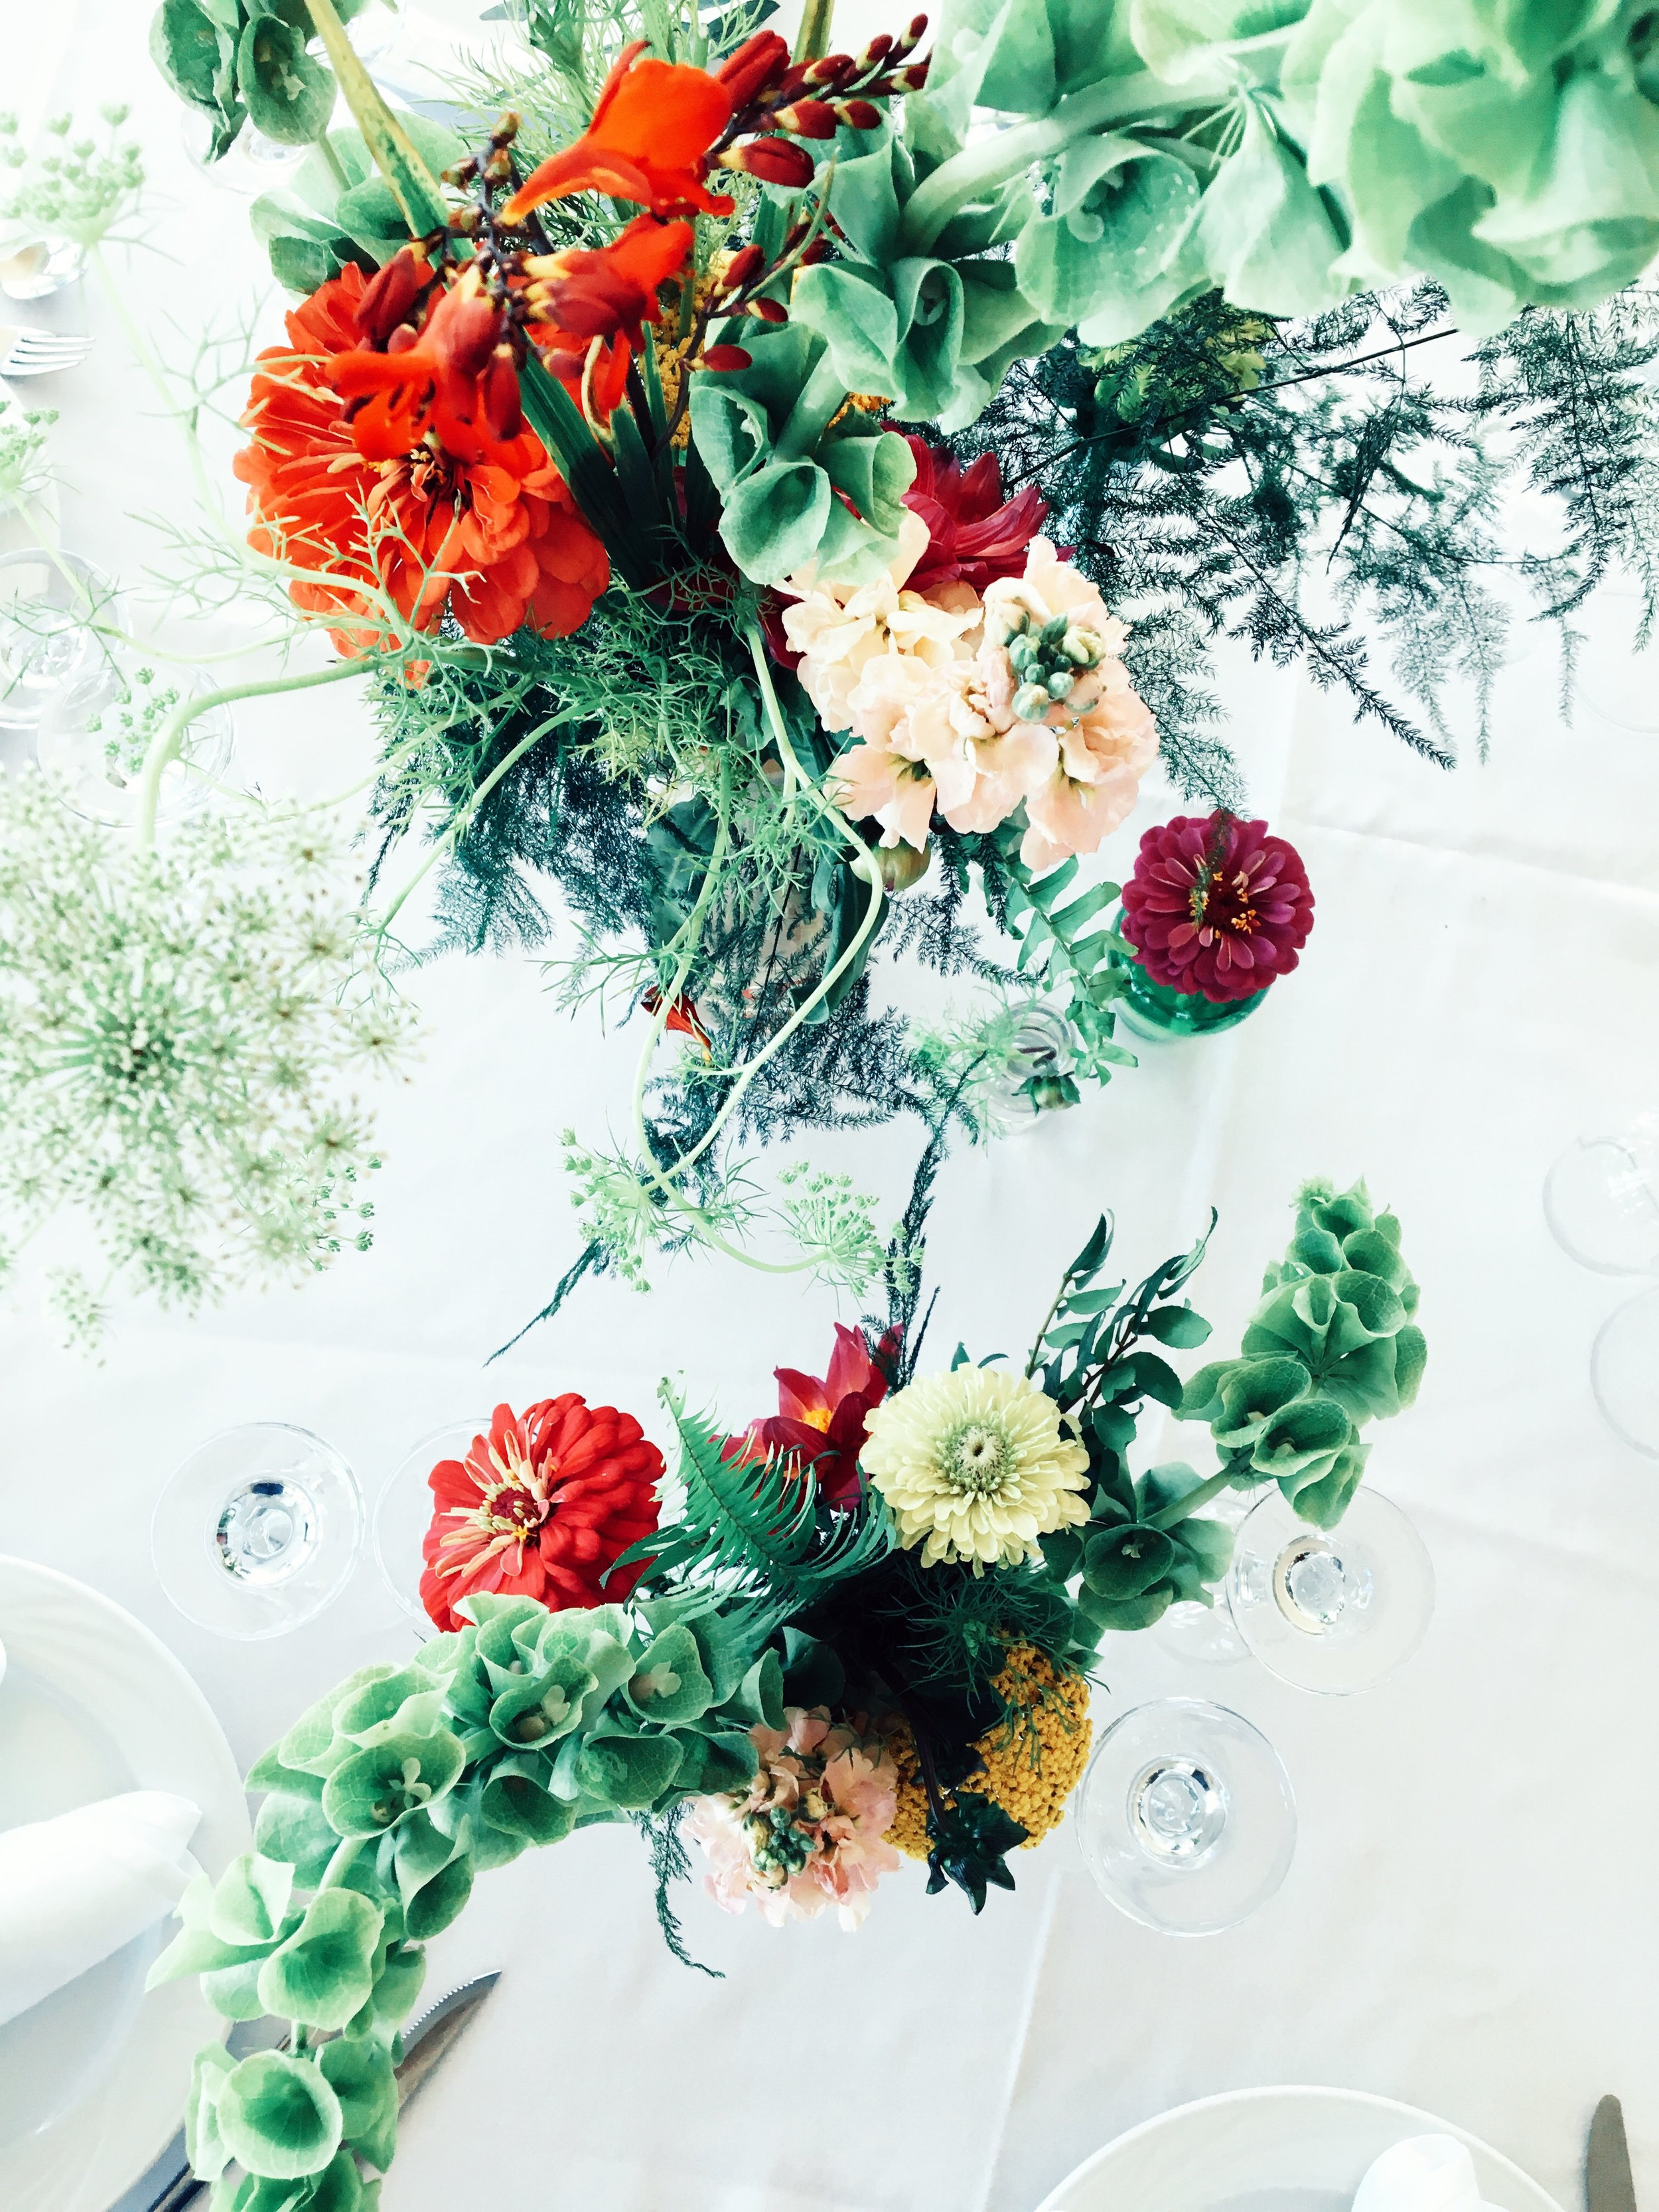 Floral Styling - Blooms can elevate the atmosphere too!